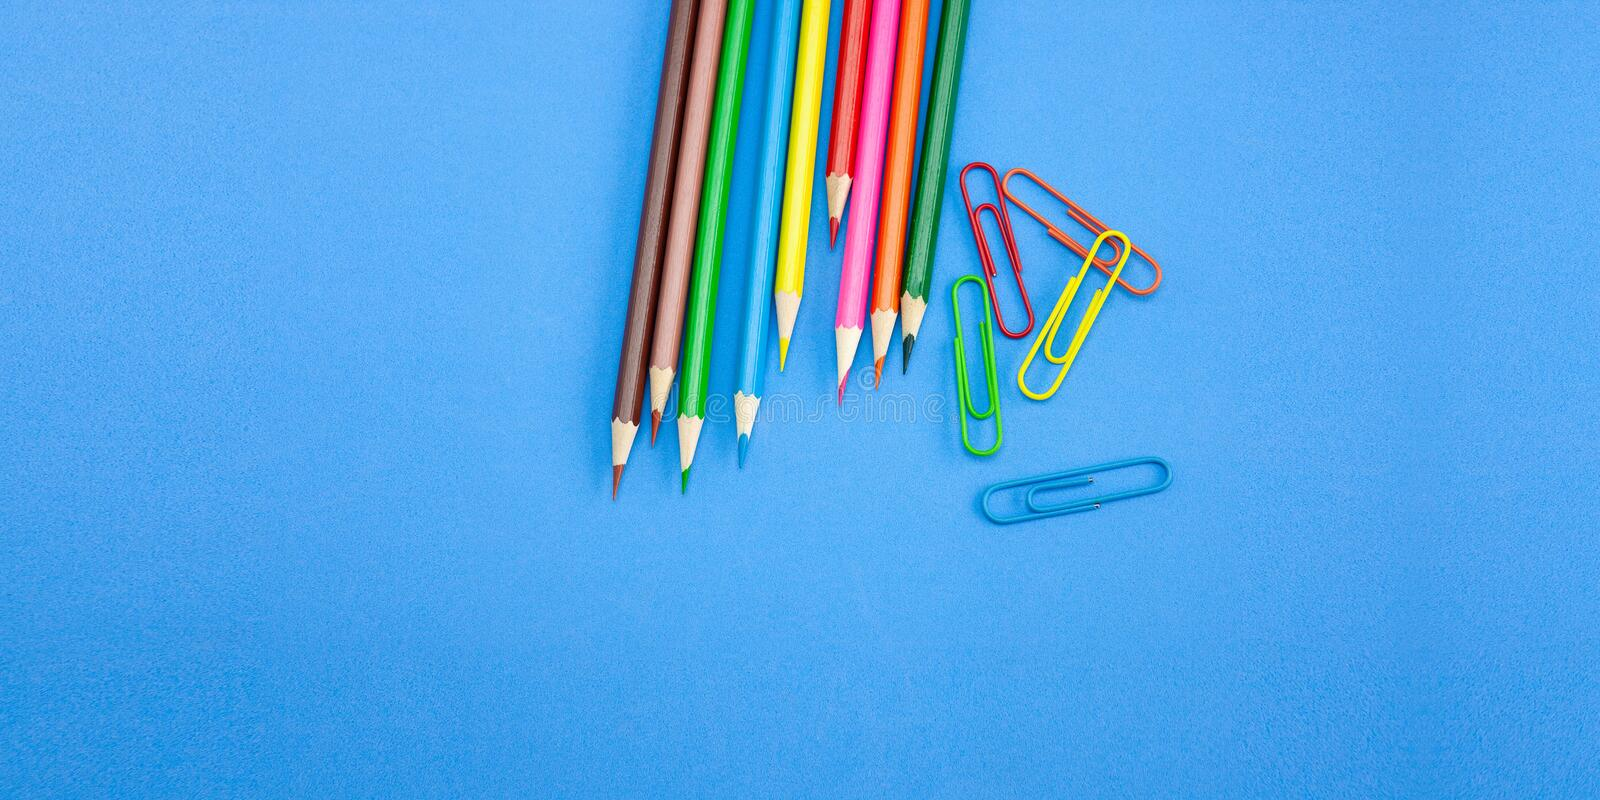 Art and drawing concepts, Colored crayon pencils and clips on blue background. Art and drawing concepts, Colored crayon pencils and clips at top corner on blue royalty free stock image